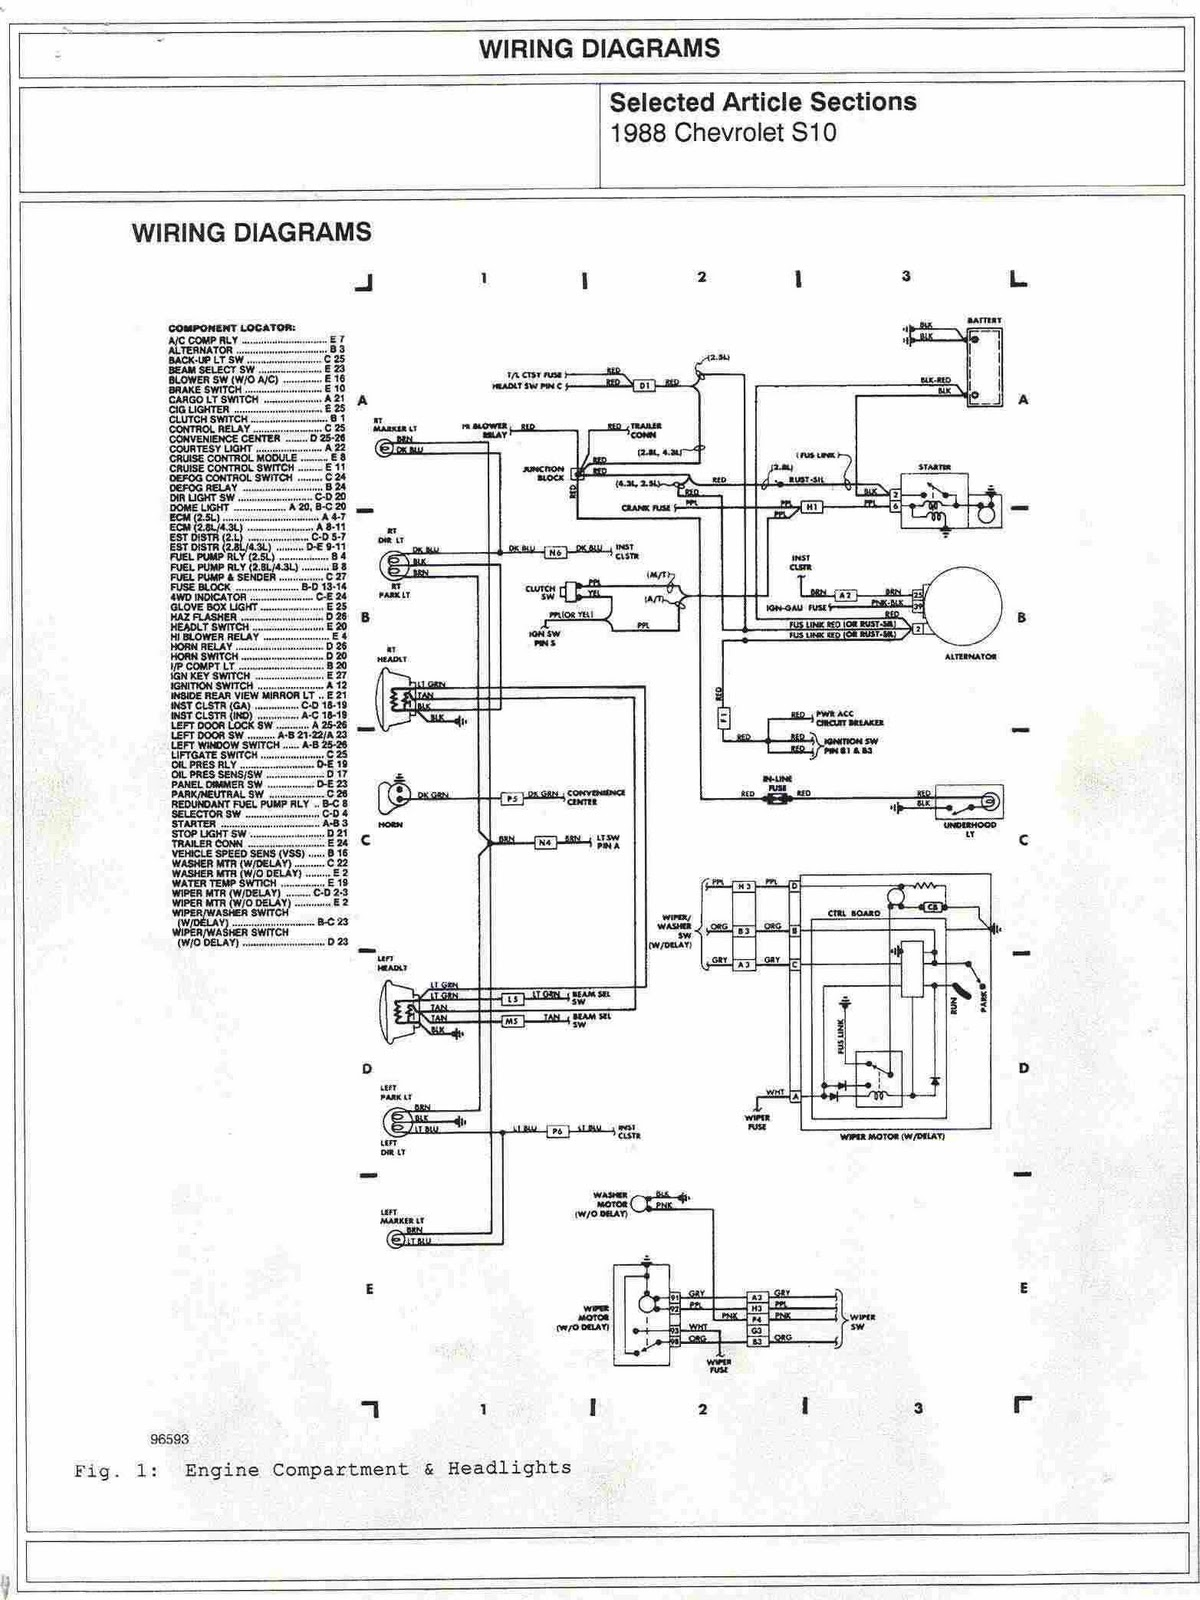 small resolution of 1988 s10 wiring diagram wiring diagram forward 1988 chevy s10 steering column wiring diagram 1988 s10 wiring diagram